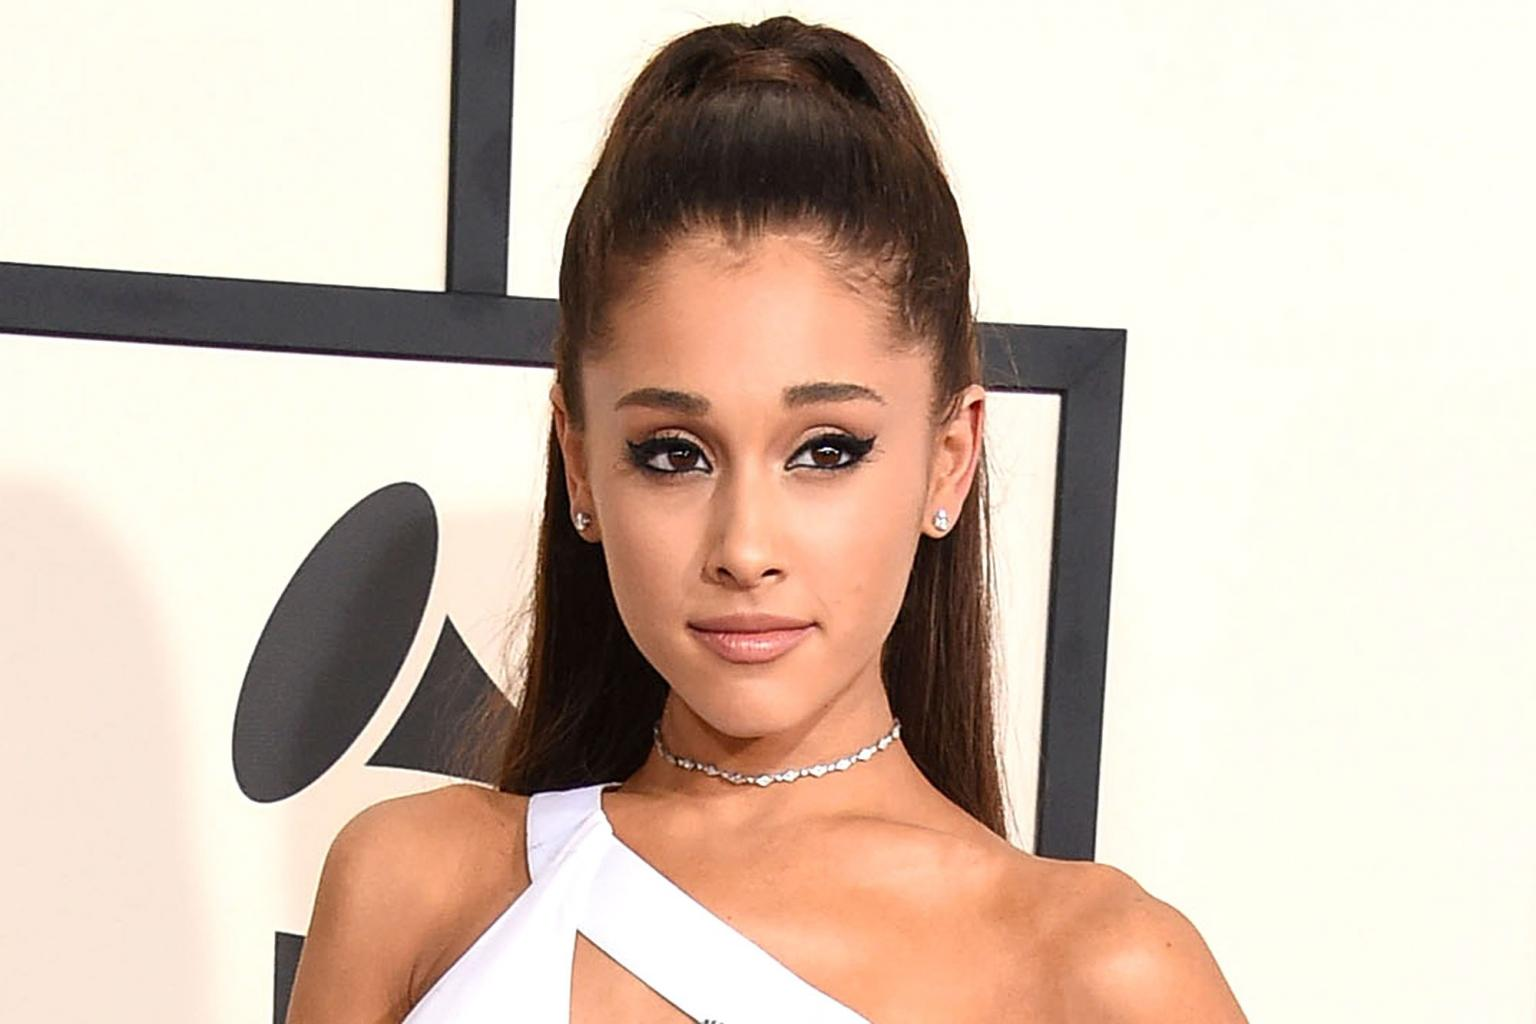 We Must Not Be Afraid  ': Ariana Grande  's Manchester Concert Will Go on as Planned After London Attacks